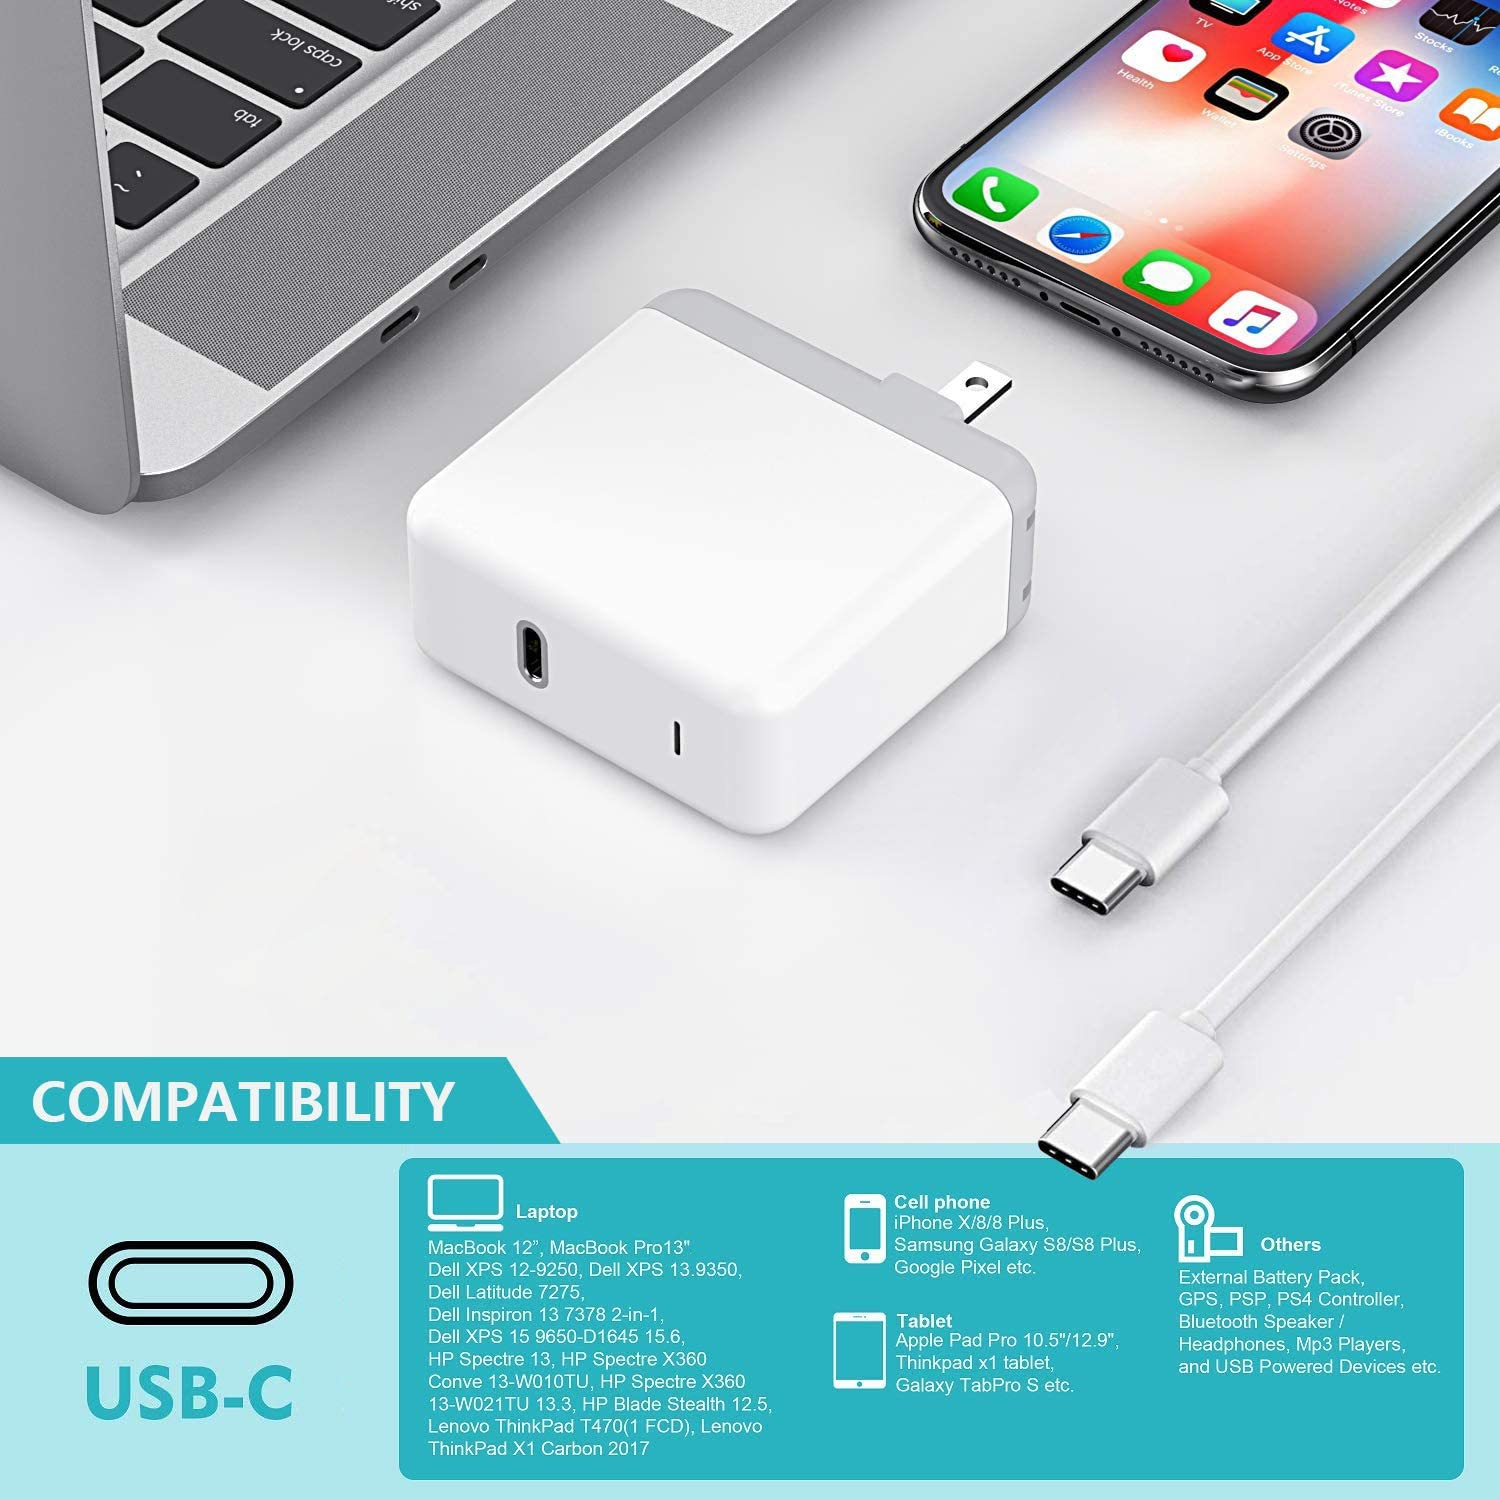 Galaxy S10 MacBook Pro USB C Charger for 2018 iPad Pro 12.9 S9 45W Thunderbolt 3 Port USB C Power Adapter with 3.3ft USB C-C Cable MacBook Air MacBook 12 inch